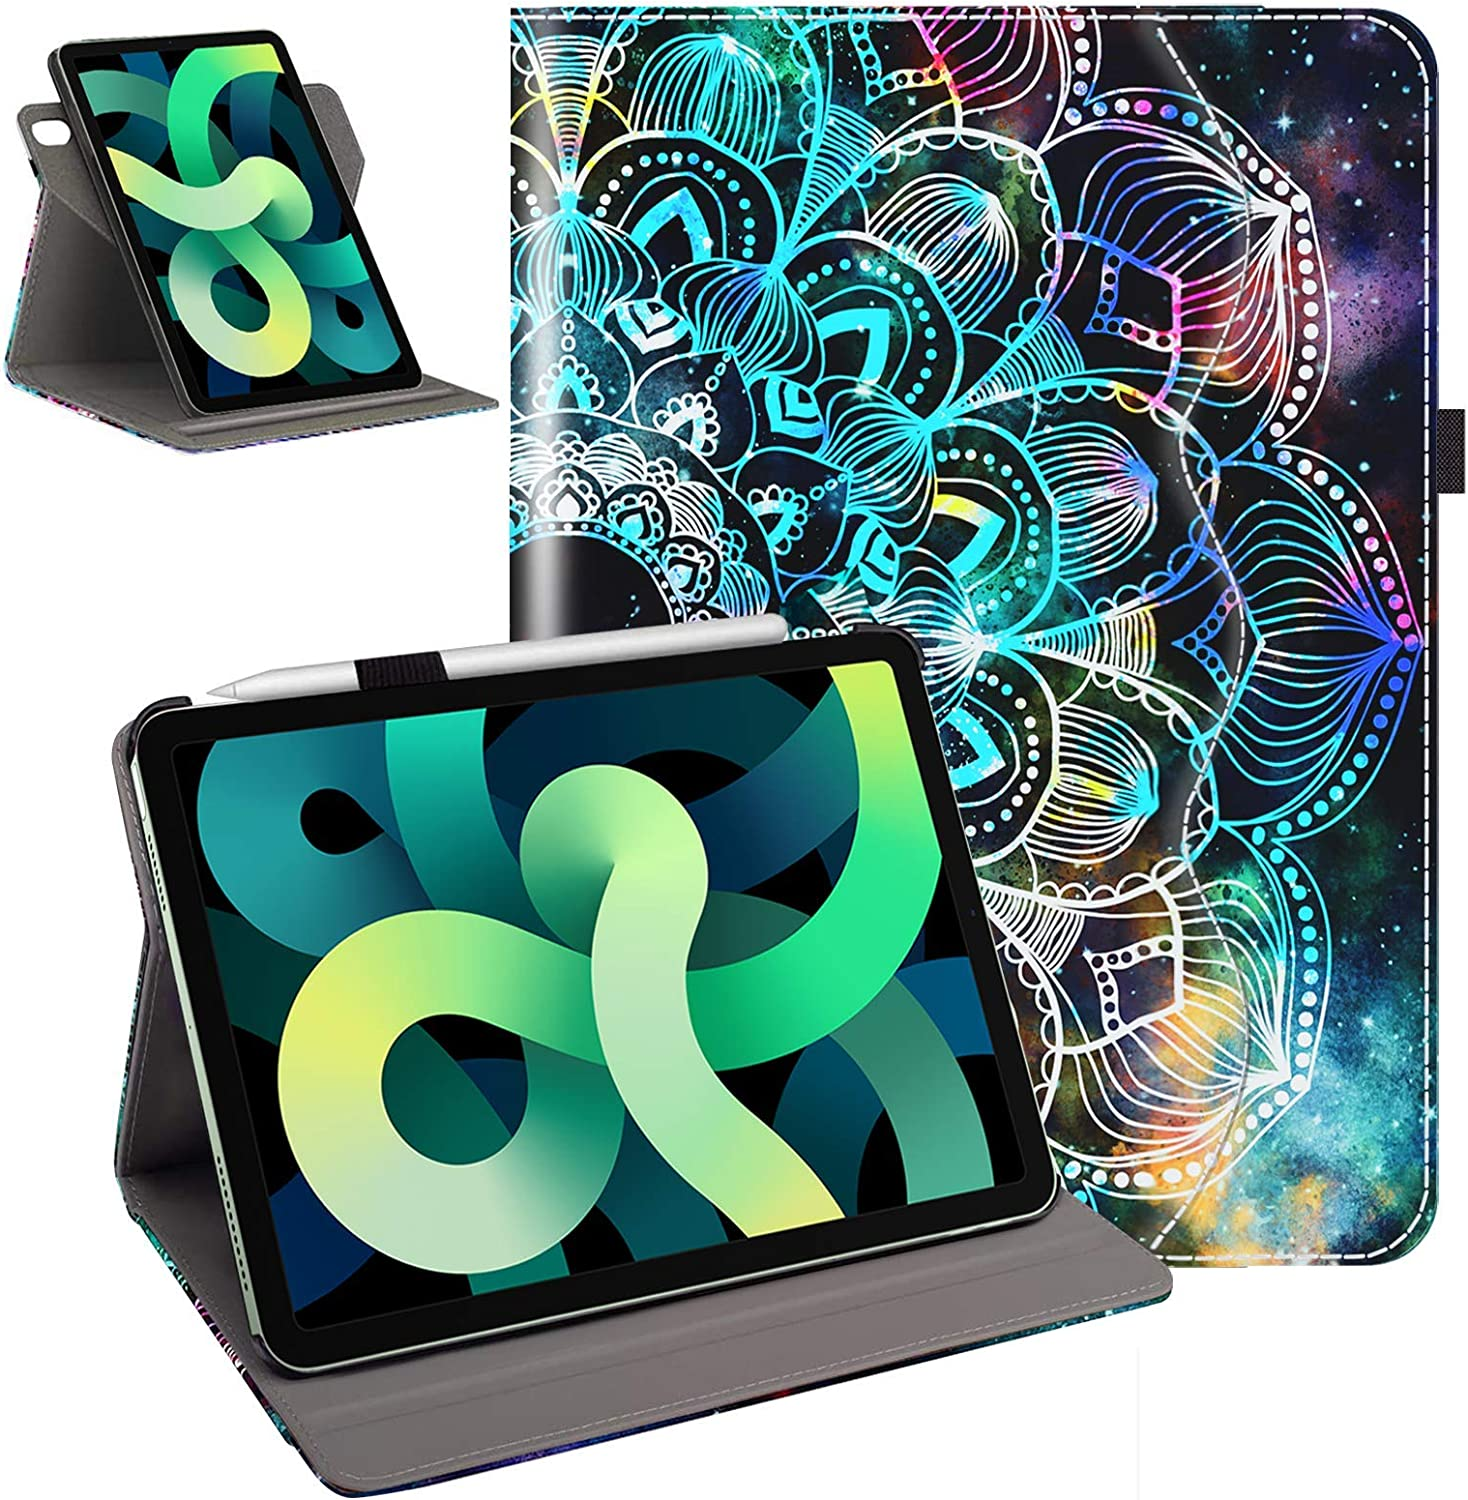 Case for New iPad Air 4 10.9 Inch 2020 with 360 Rotating, Auto Wake/Sleep, Pencil Holder [Supports Pencil 2nd Gen Charging] with Multi-Angle Viewing, Mandala